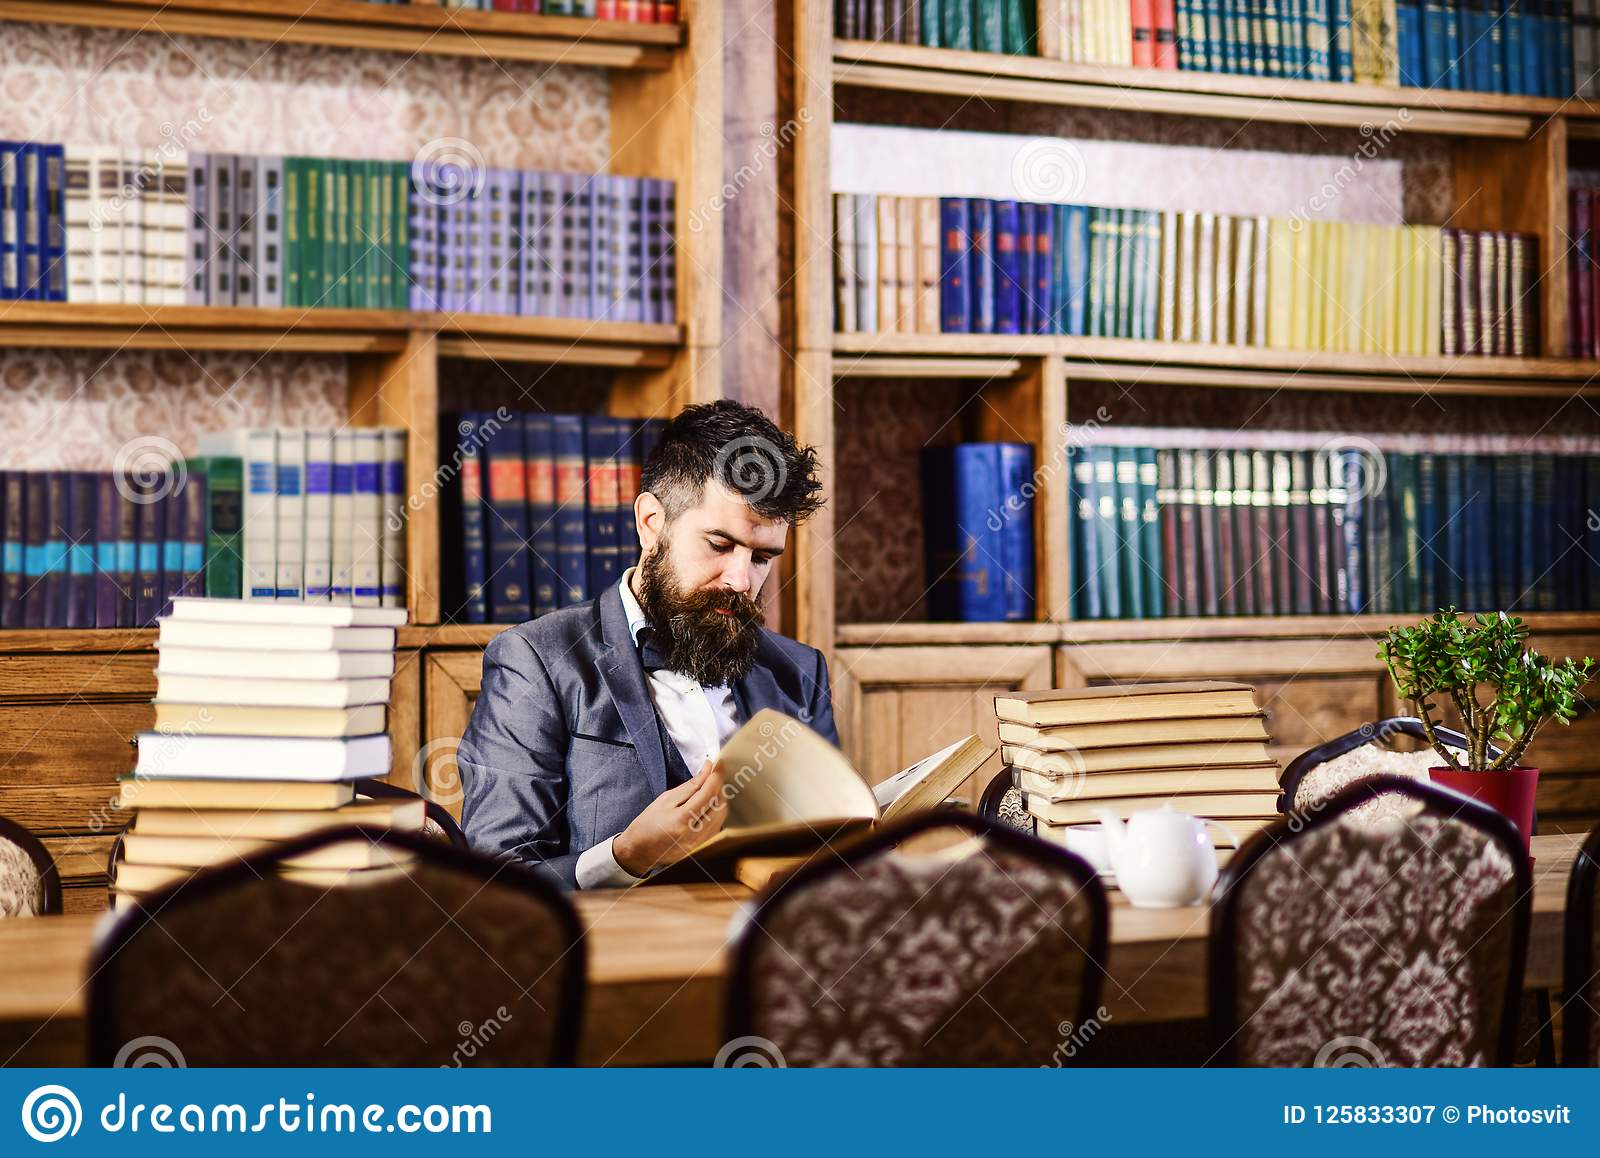 Mature man or professor with long beard and calm face. Historian sits in library and reads old books.